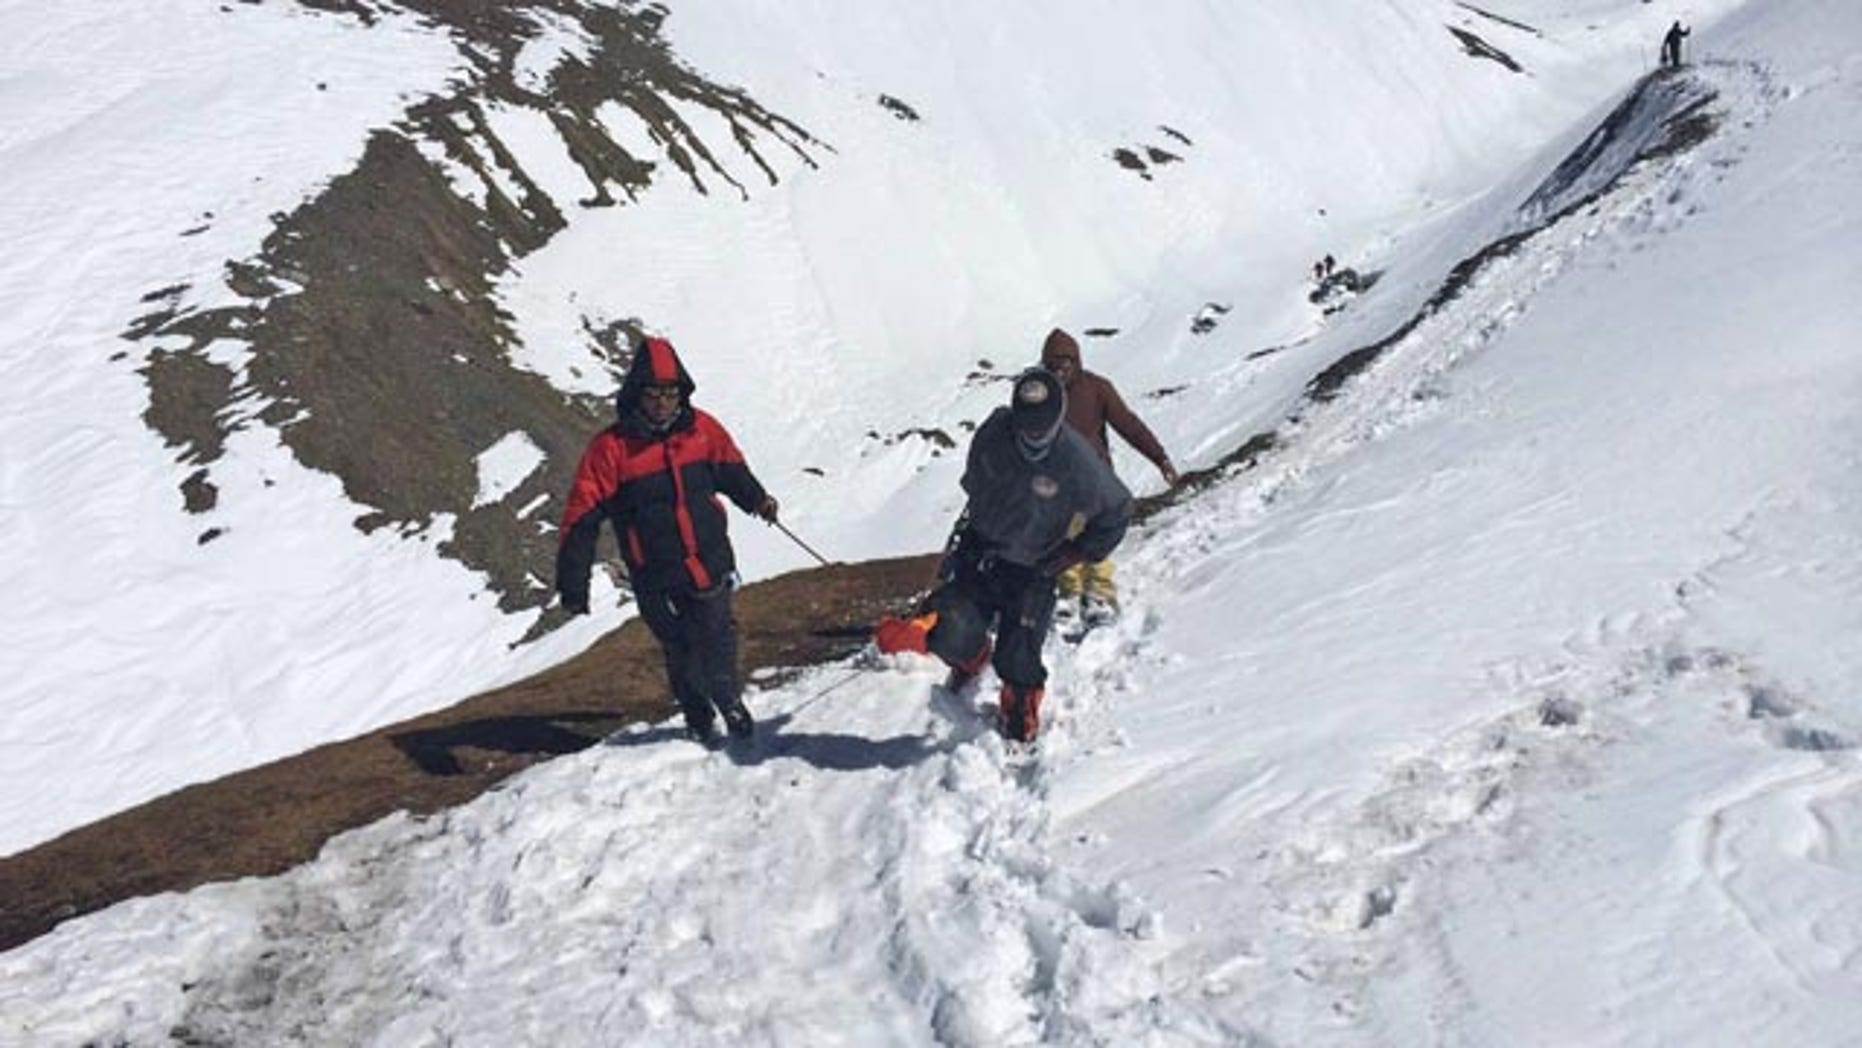 October 17, 2014: In this handout photo provided by the Nepalese army, rescue team members carry the body of an avalanche victim at Thorong La pass area. (AP Photo/Nepalese Army)